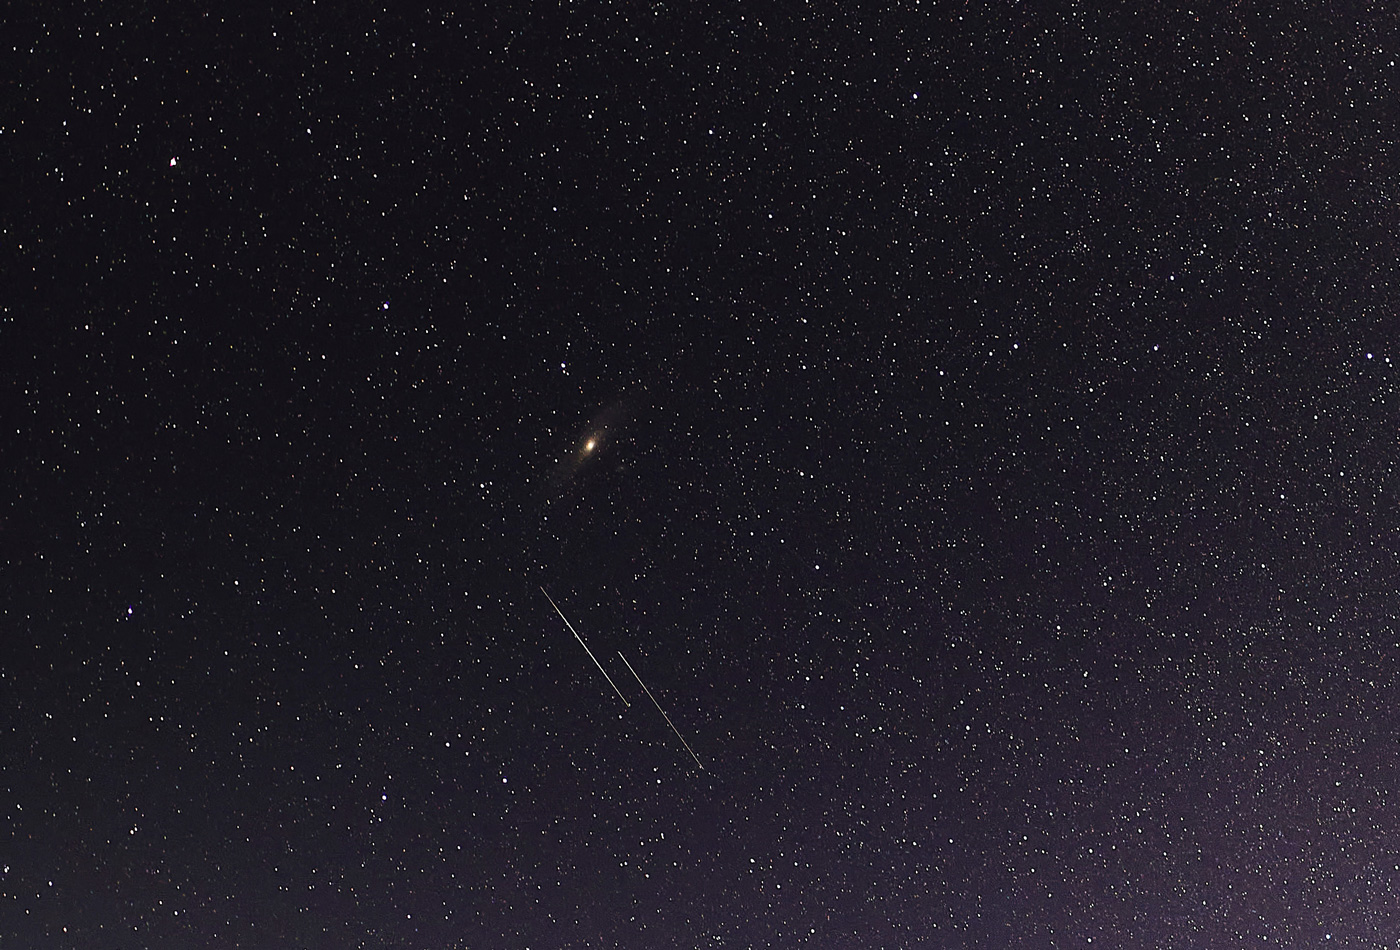 Photo of a night sky with meteors